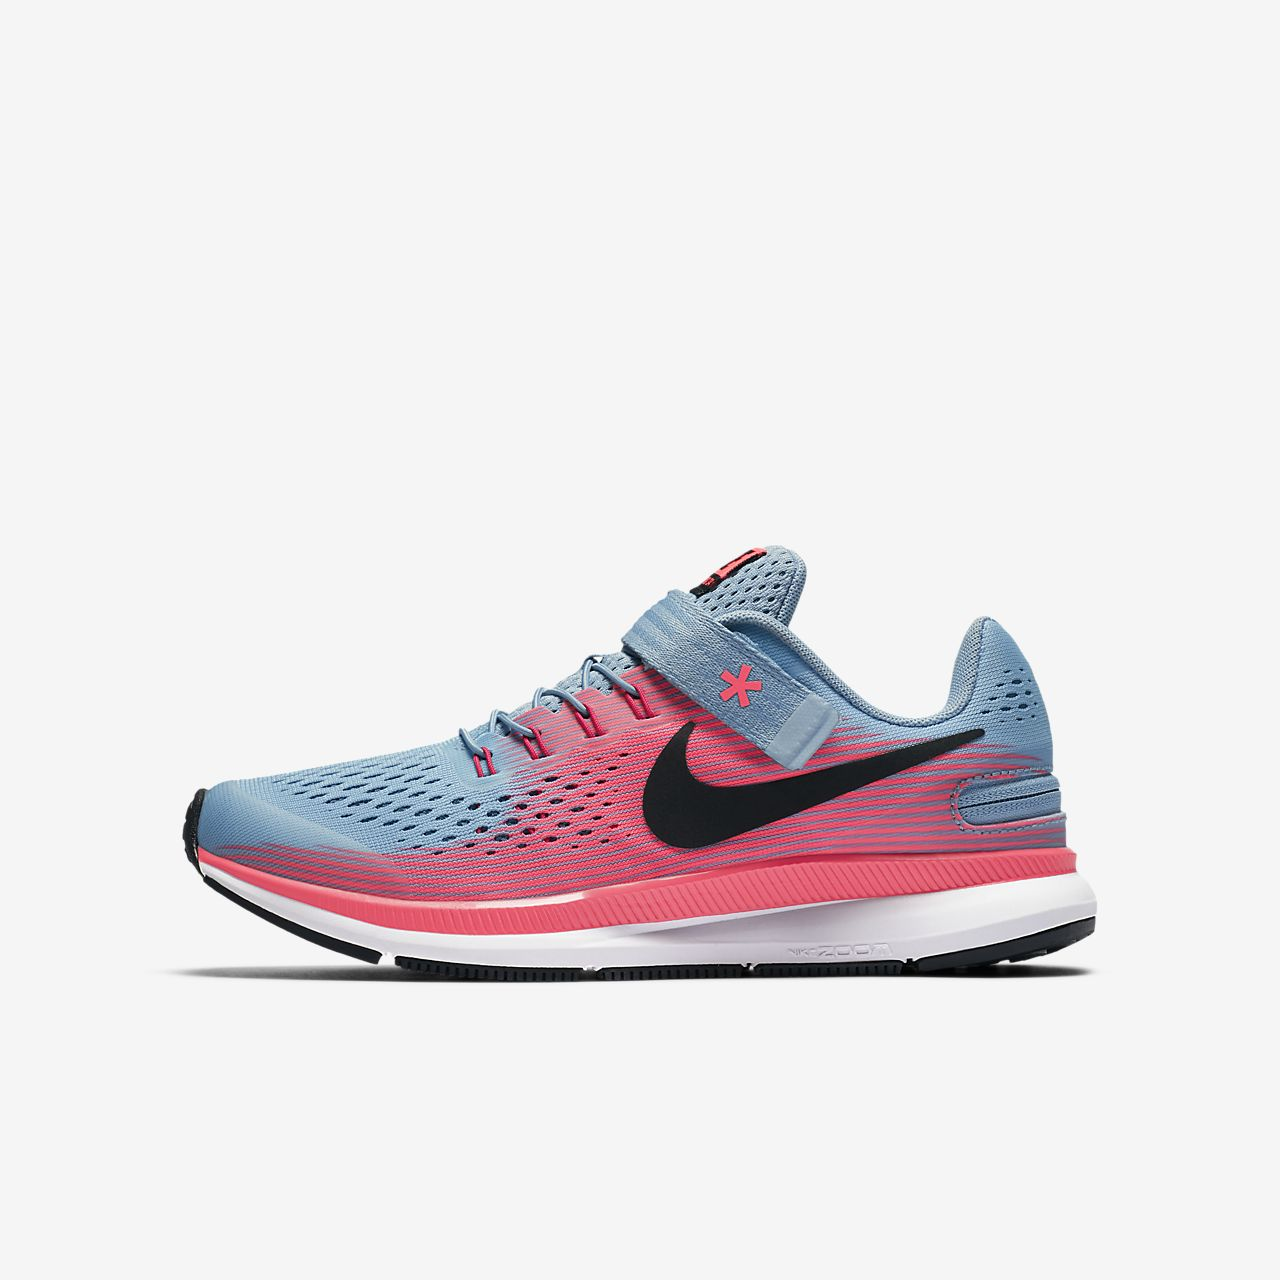 ... Nike Zoom Pegasus 34 FlyEase Big Kids' Running Shoe